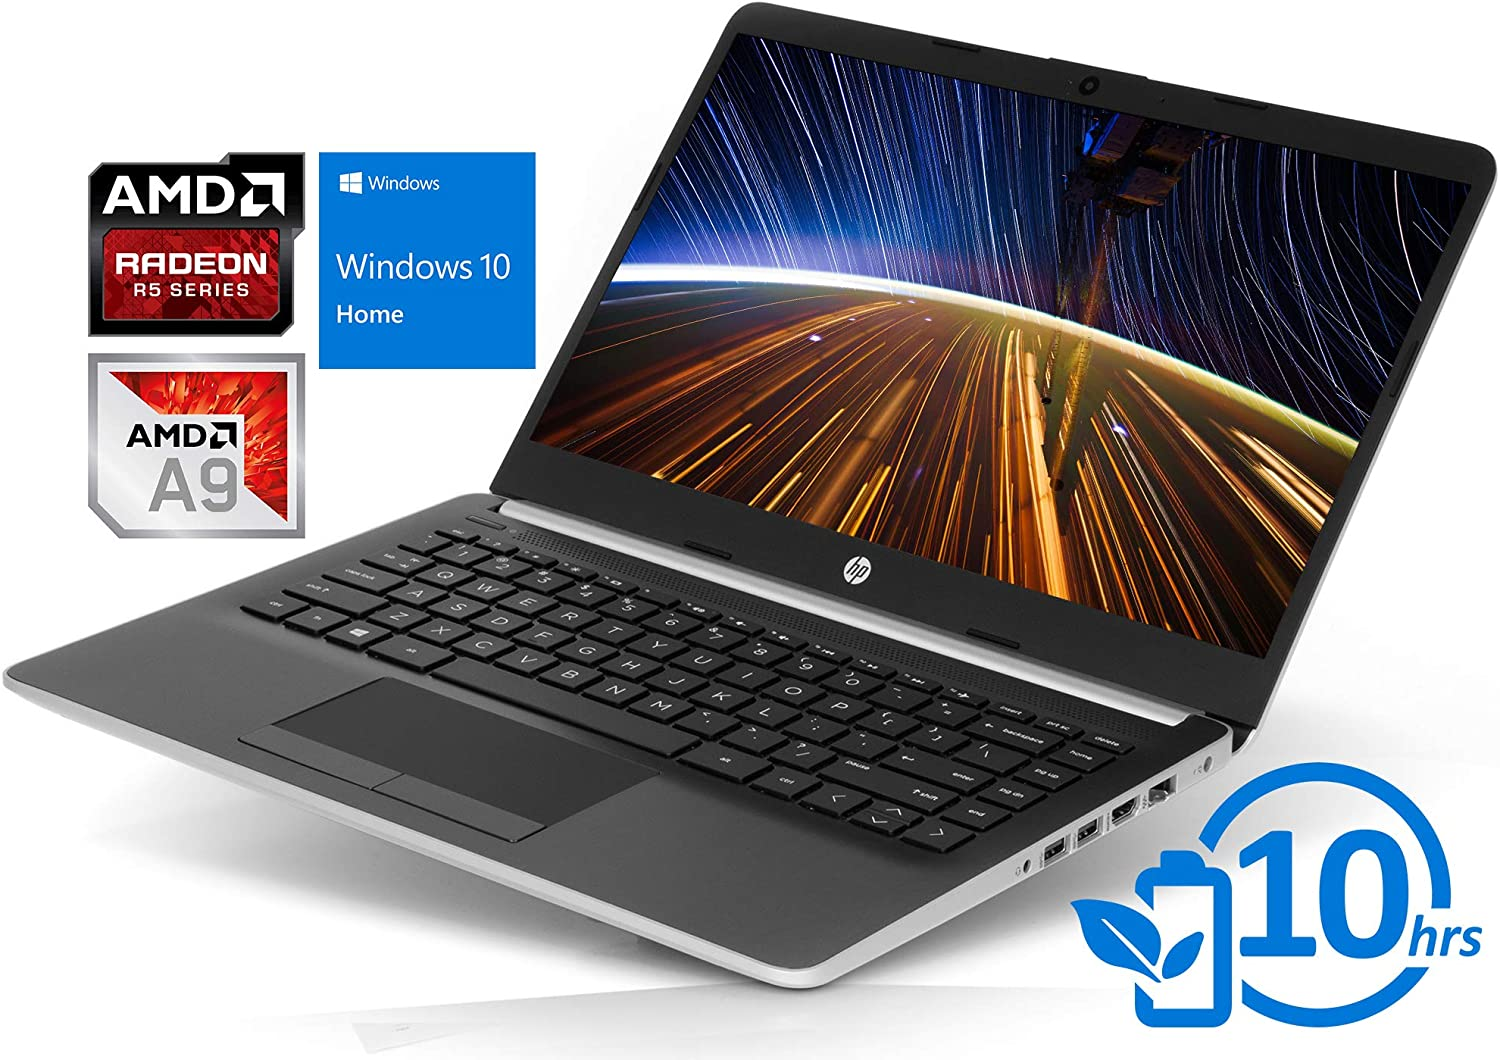 "HP 14 (14-dk0002dx) Laptop, 14"" HD Display, AMD A9-9425 Upto 3.7GHz, 4GB RAM, 128GB NVMe SSD, HDMI, Card Reader, Wi-Fi, Bluetooth, Windows 10 Home S"